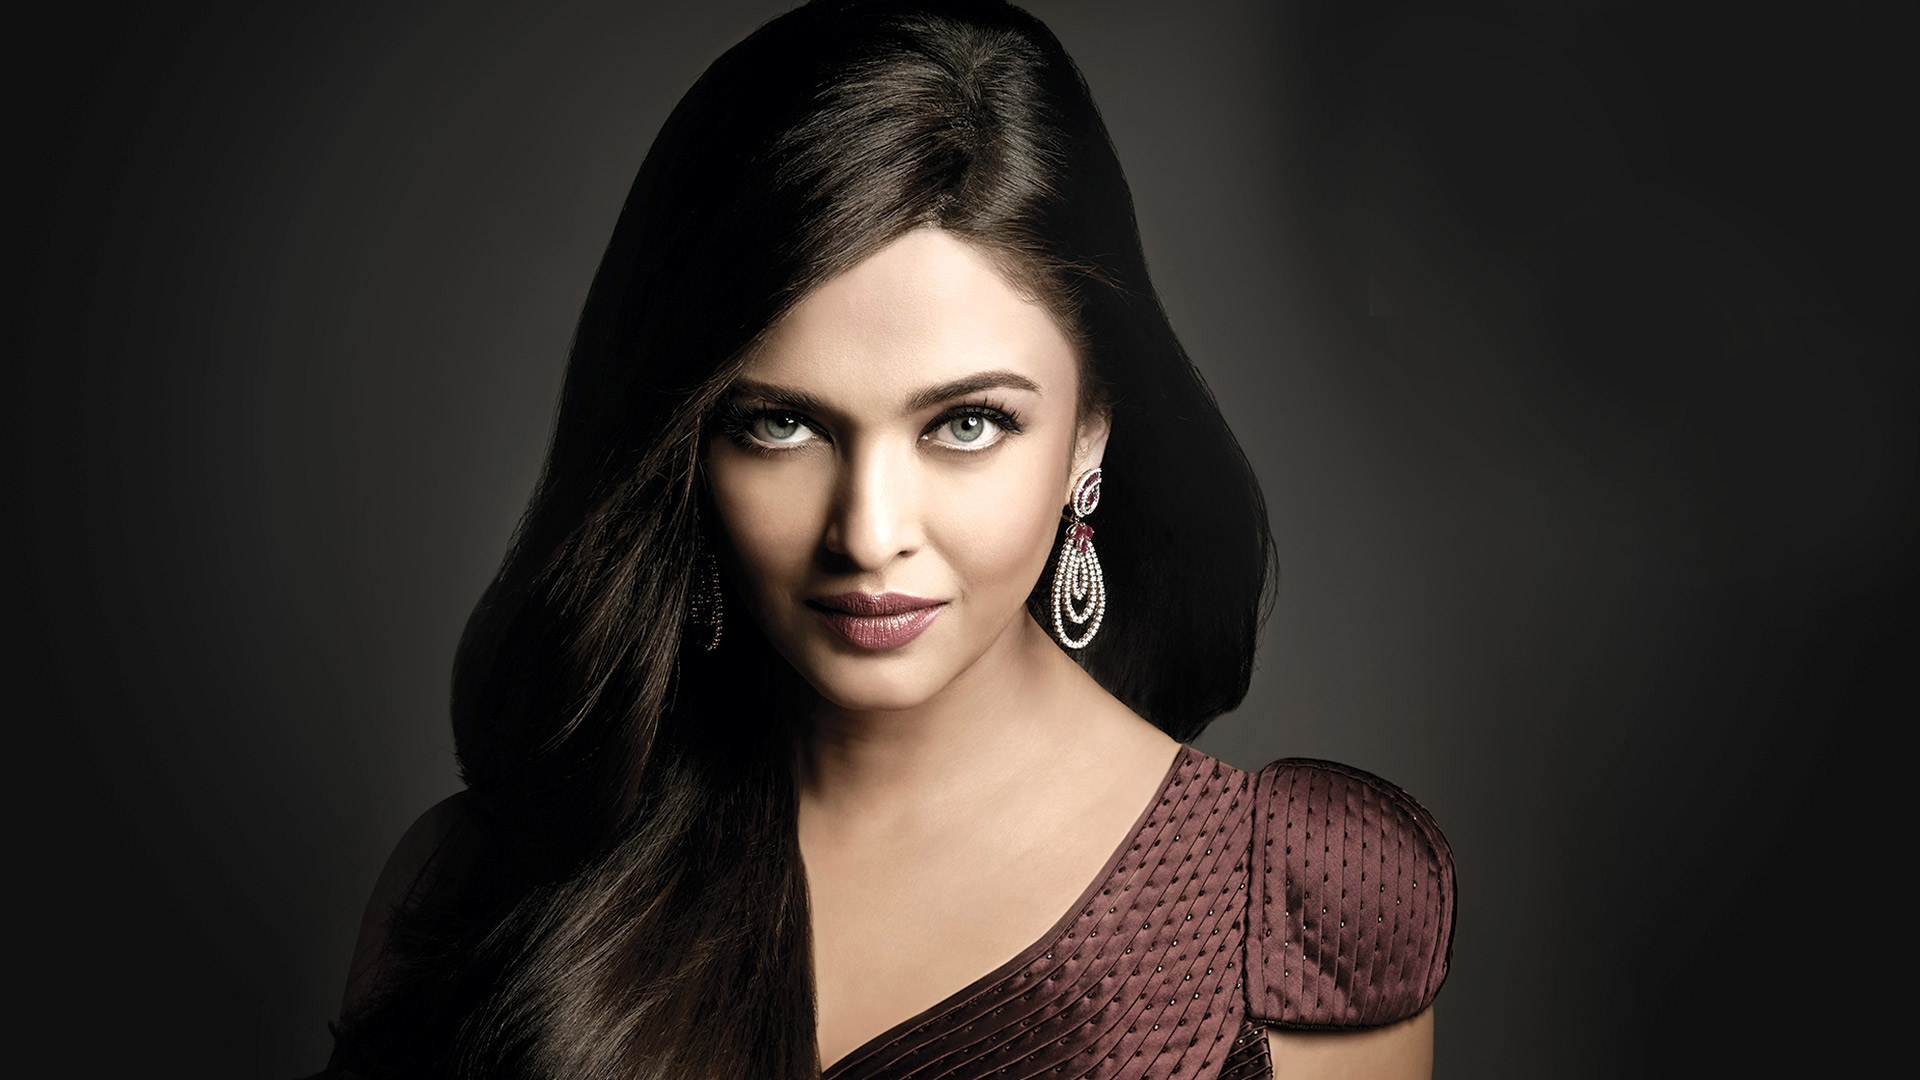 Aishwarya Rai Bachchan photos: 50 rare HD photos of Aishwarya Rai Aishwarya rai hd images